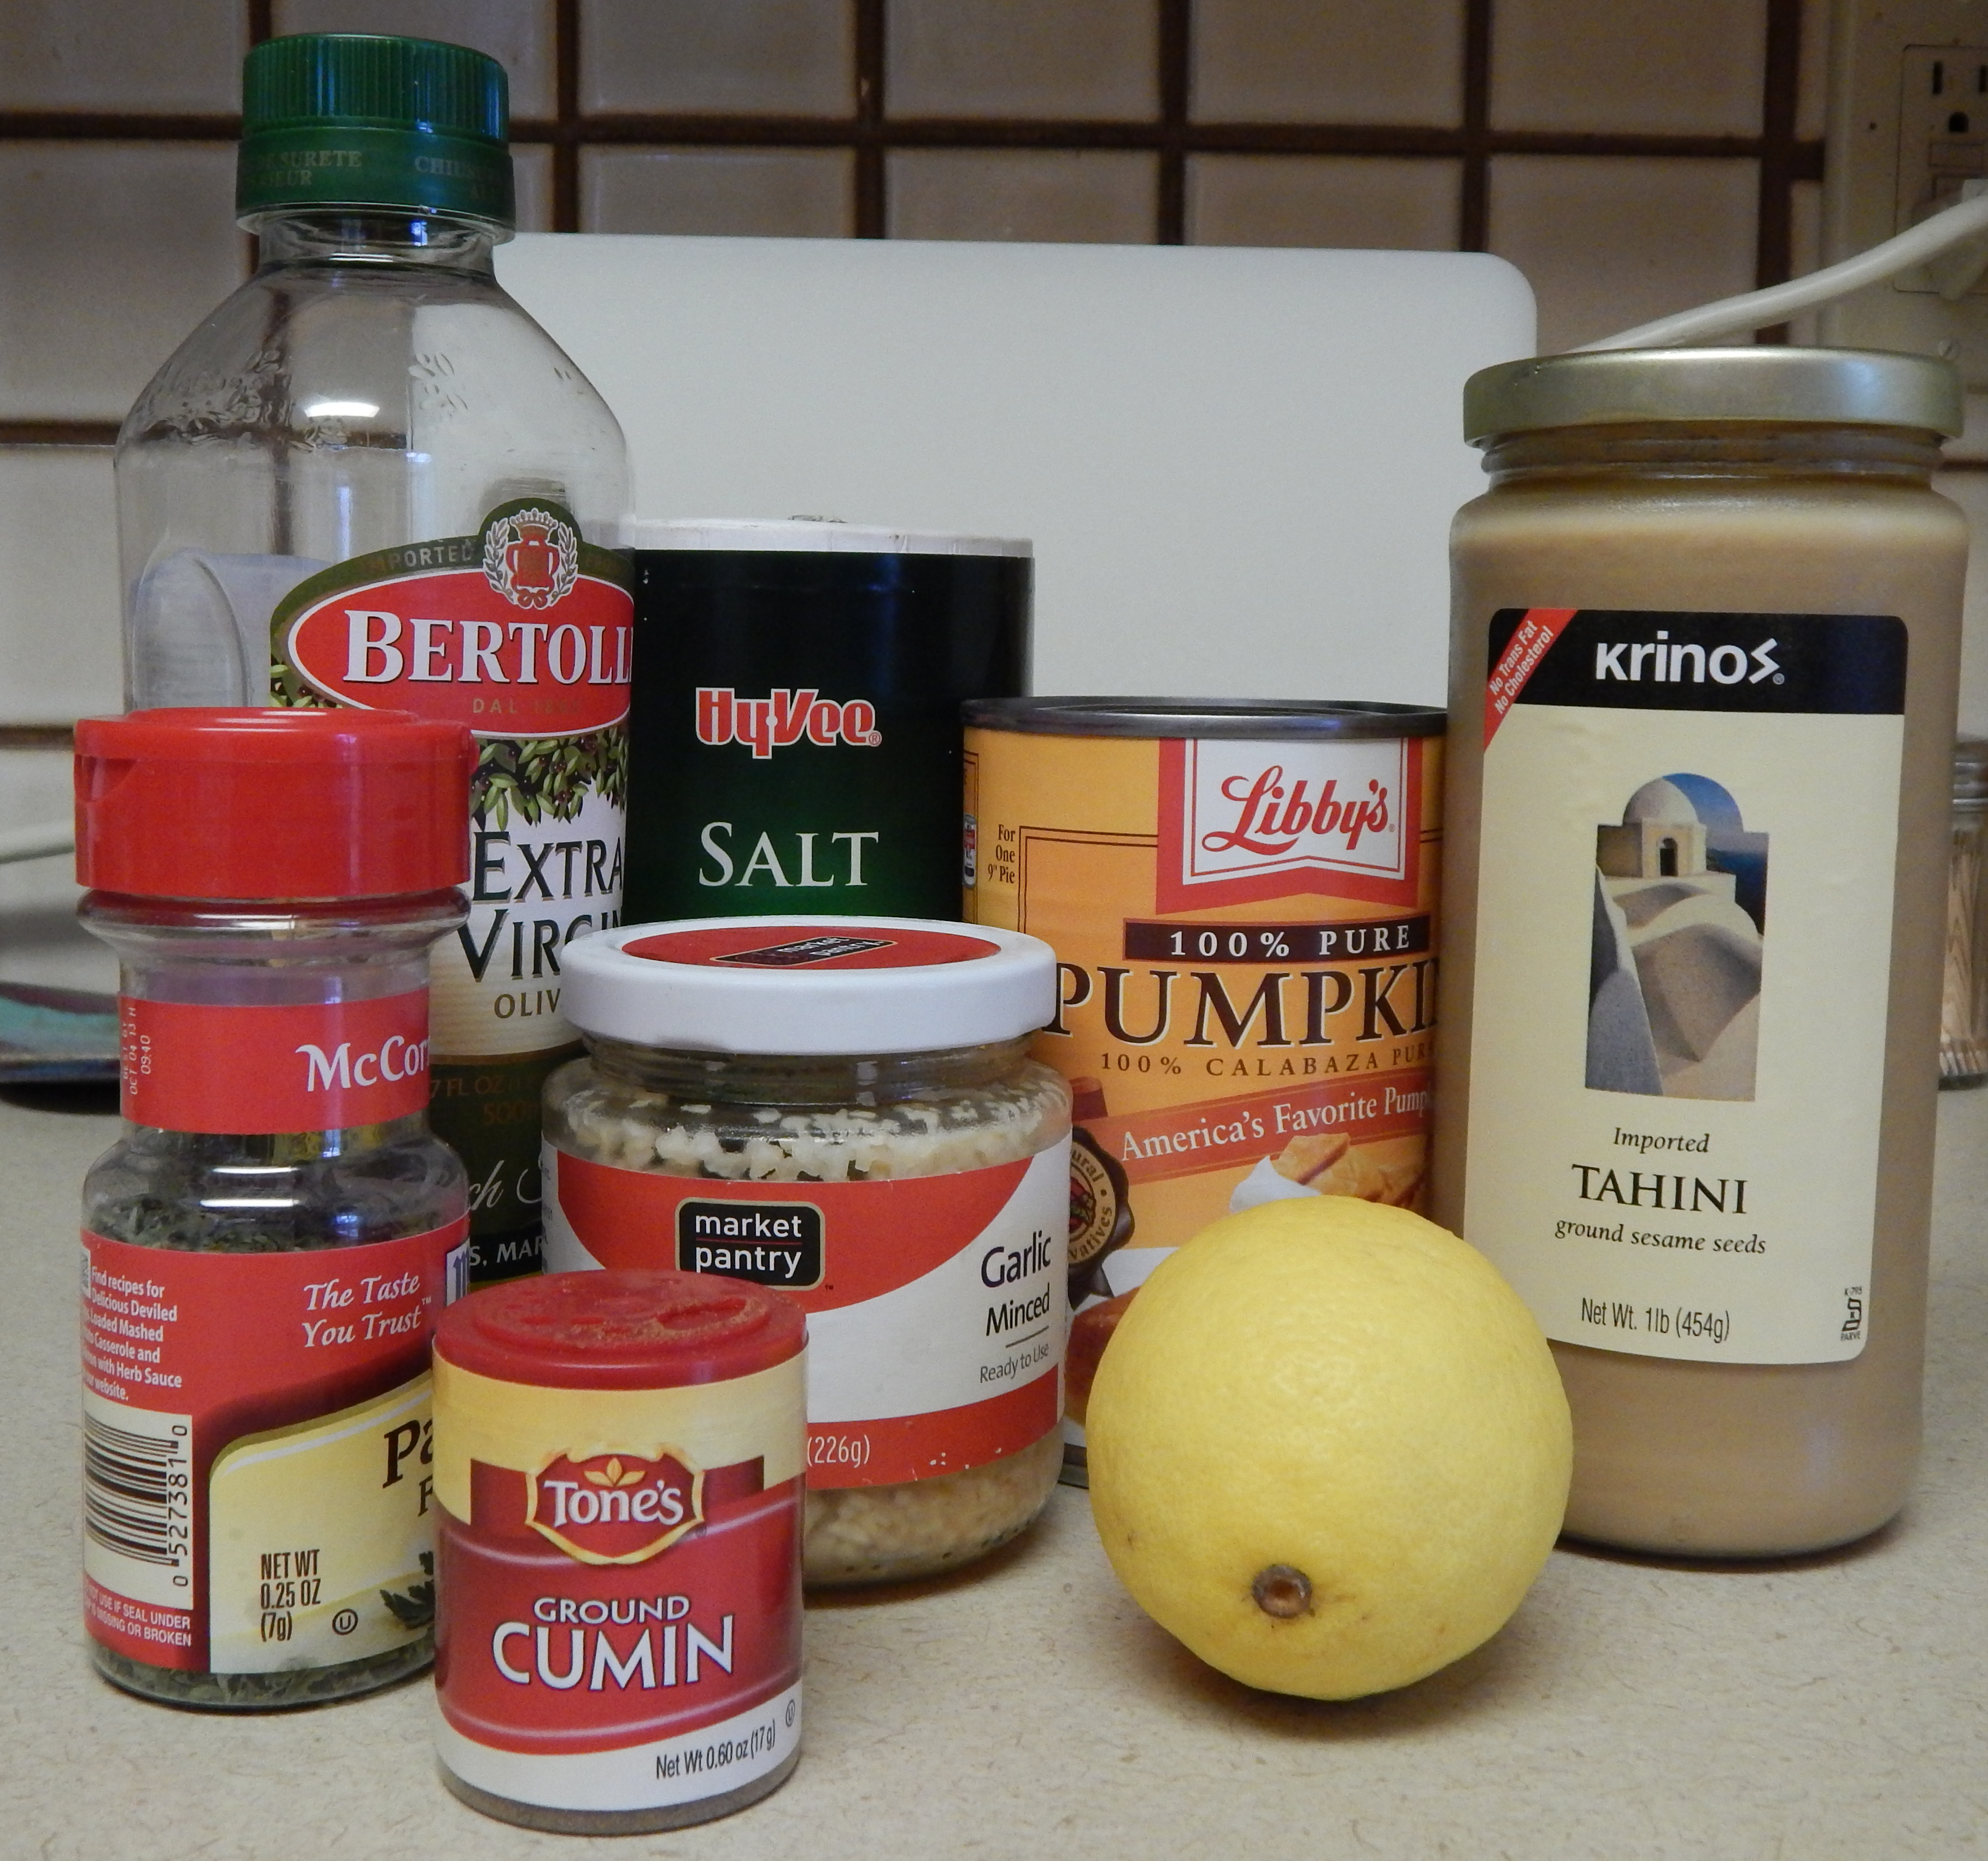 This is a quick glance at the ingredients needed for the Pumpkin Hummus. I omitted the Cayenne Pepper in the image because I am making that an optional ingredient-although I love it!